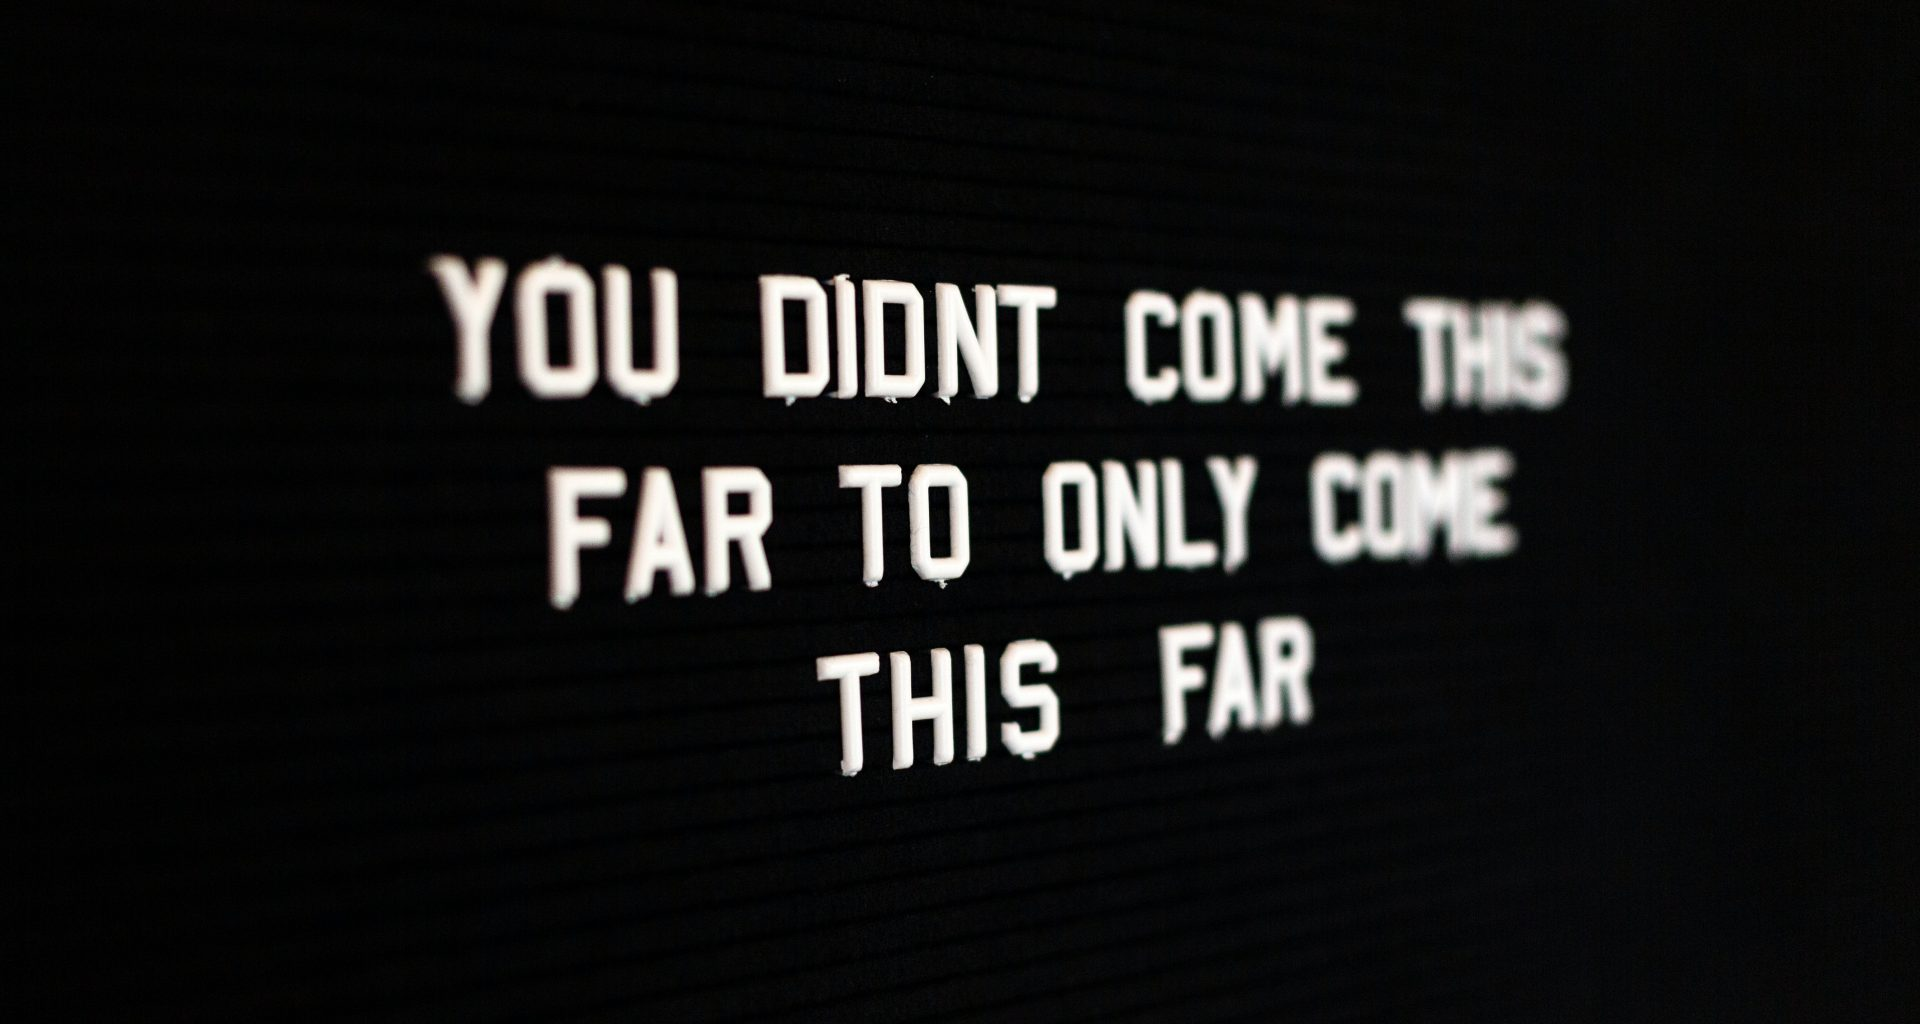 motivational quote for small business owners